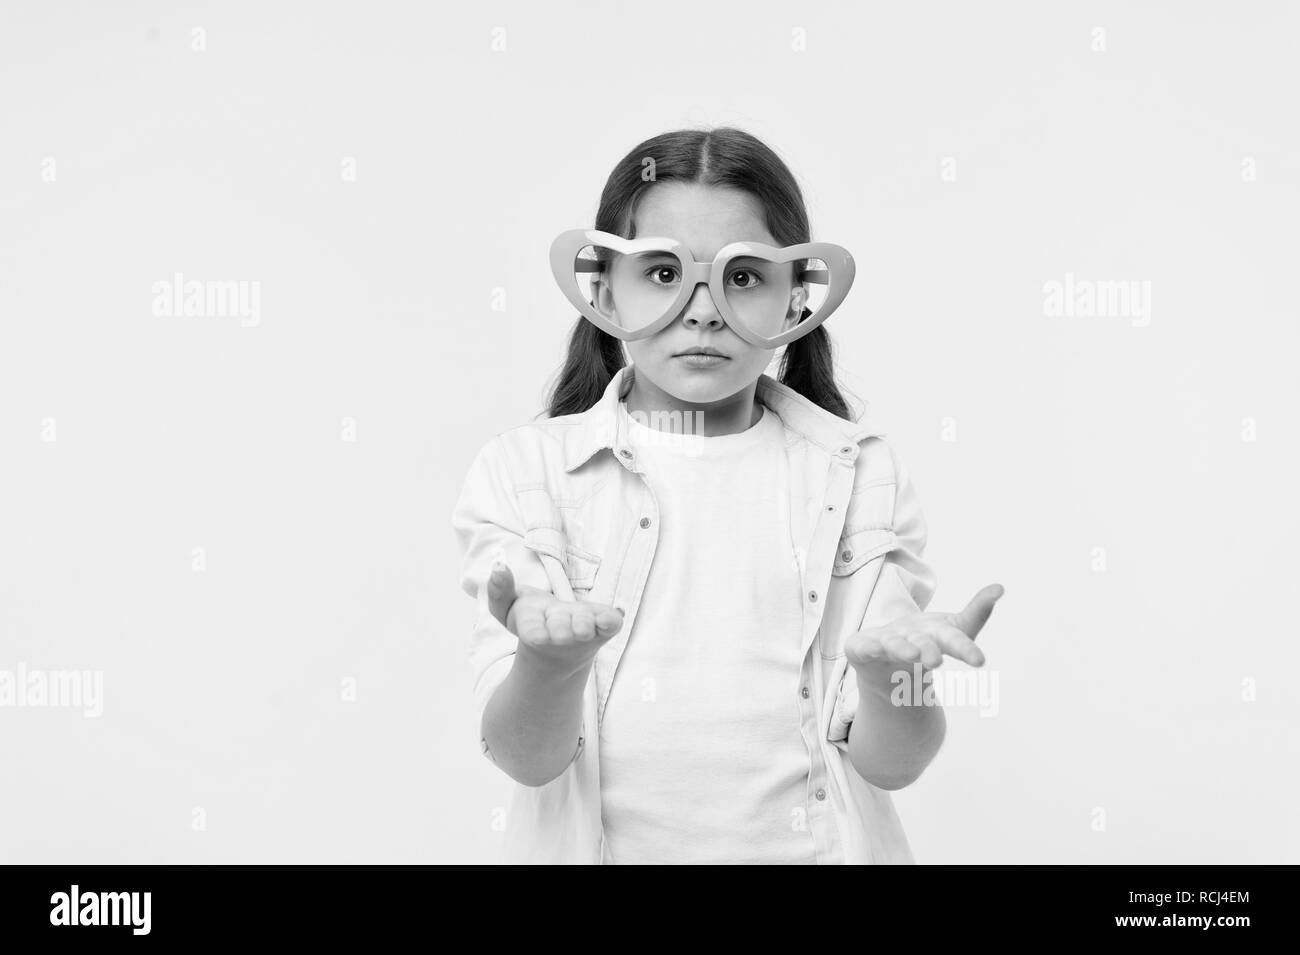 Kid girl heart shaped eyeglasses looks disappointed. Girl wear cute eyeglasses disappointed face. What just happened. She asks you. Child dissapointed confused what going on. Disappointment concept. - Stock Image